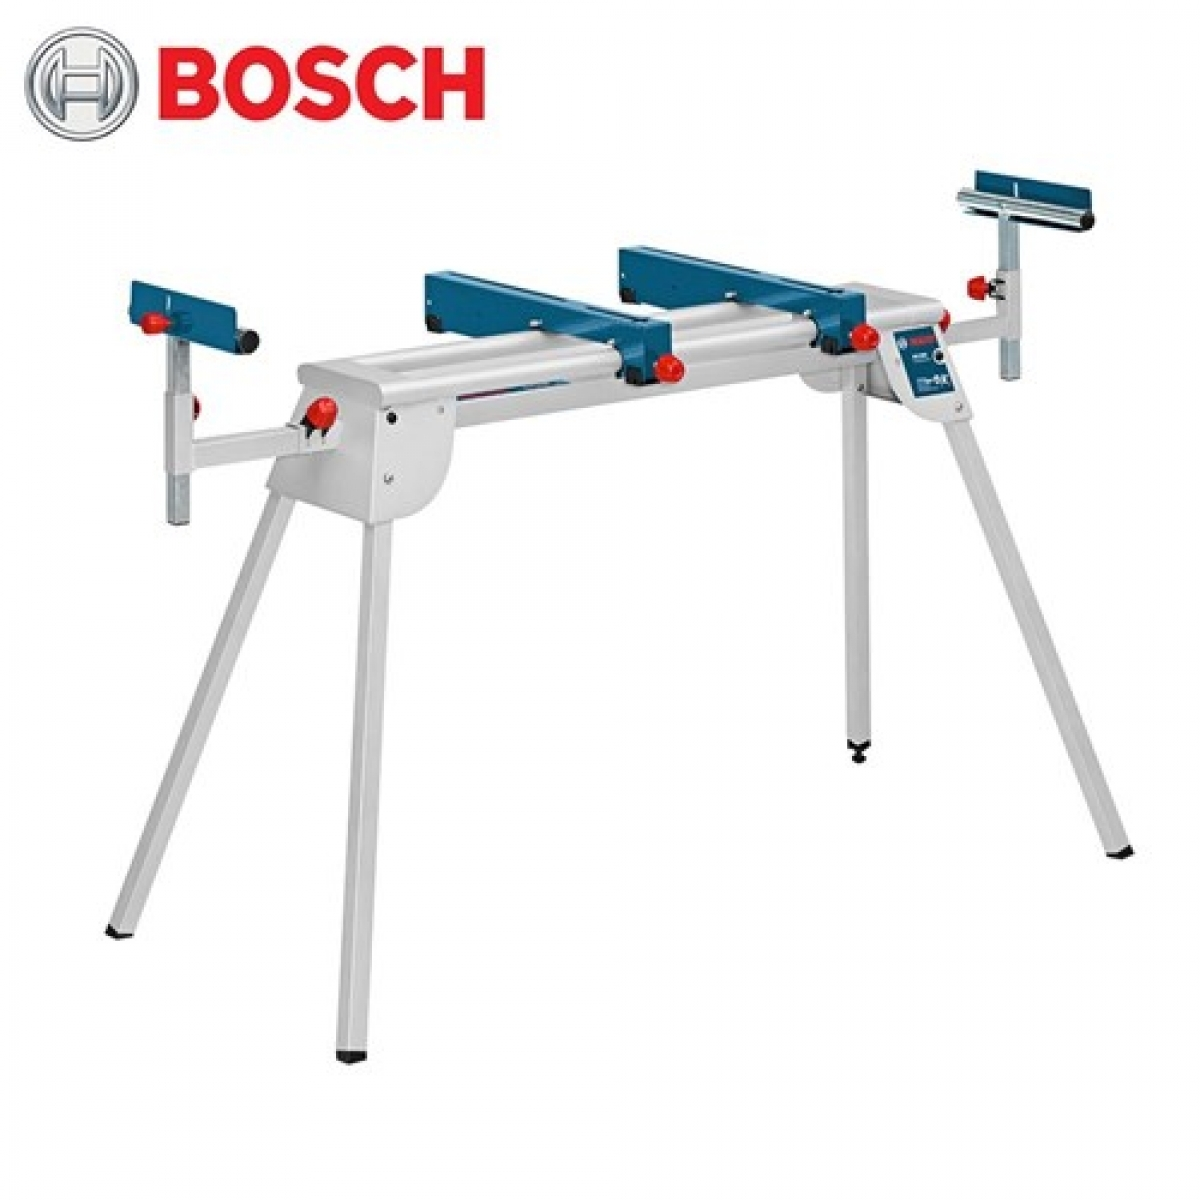 Bosch T1b Miter Saw Stand Amp Work Bench My Power Tools